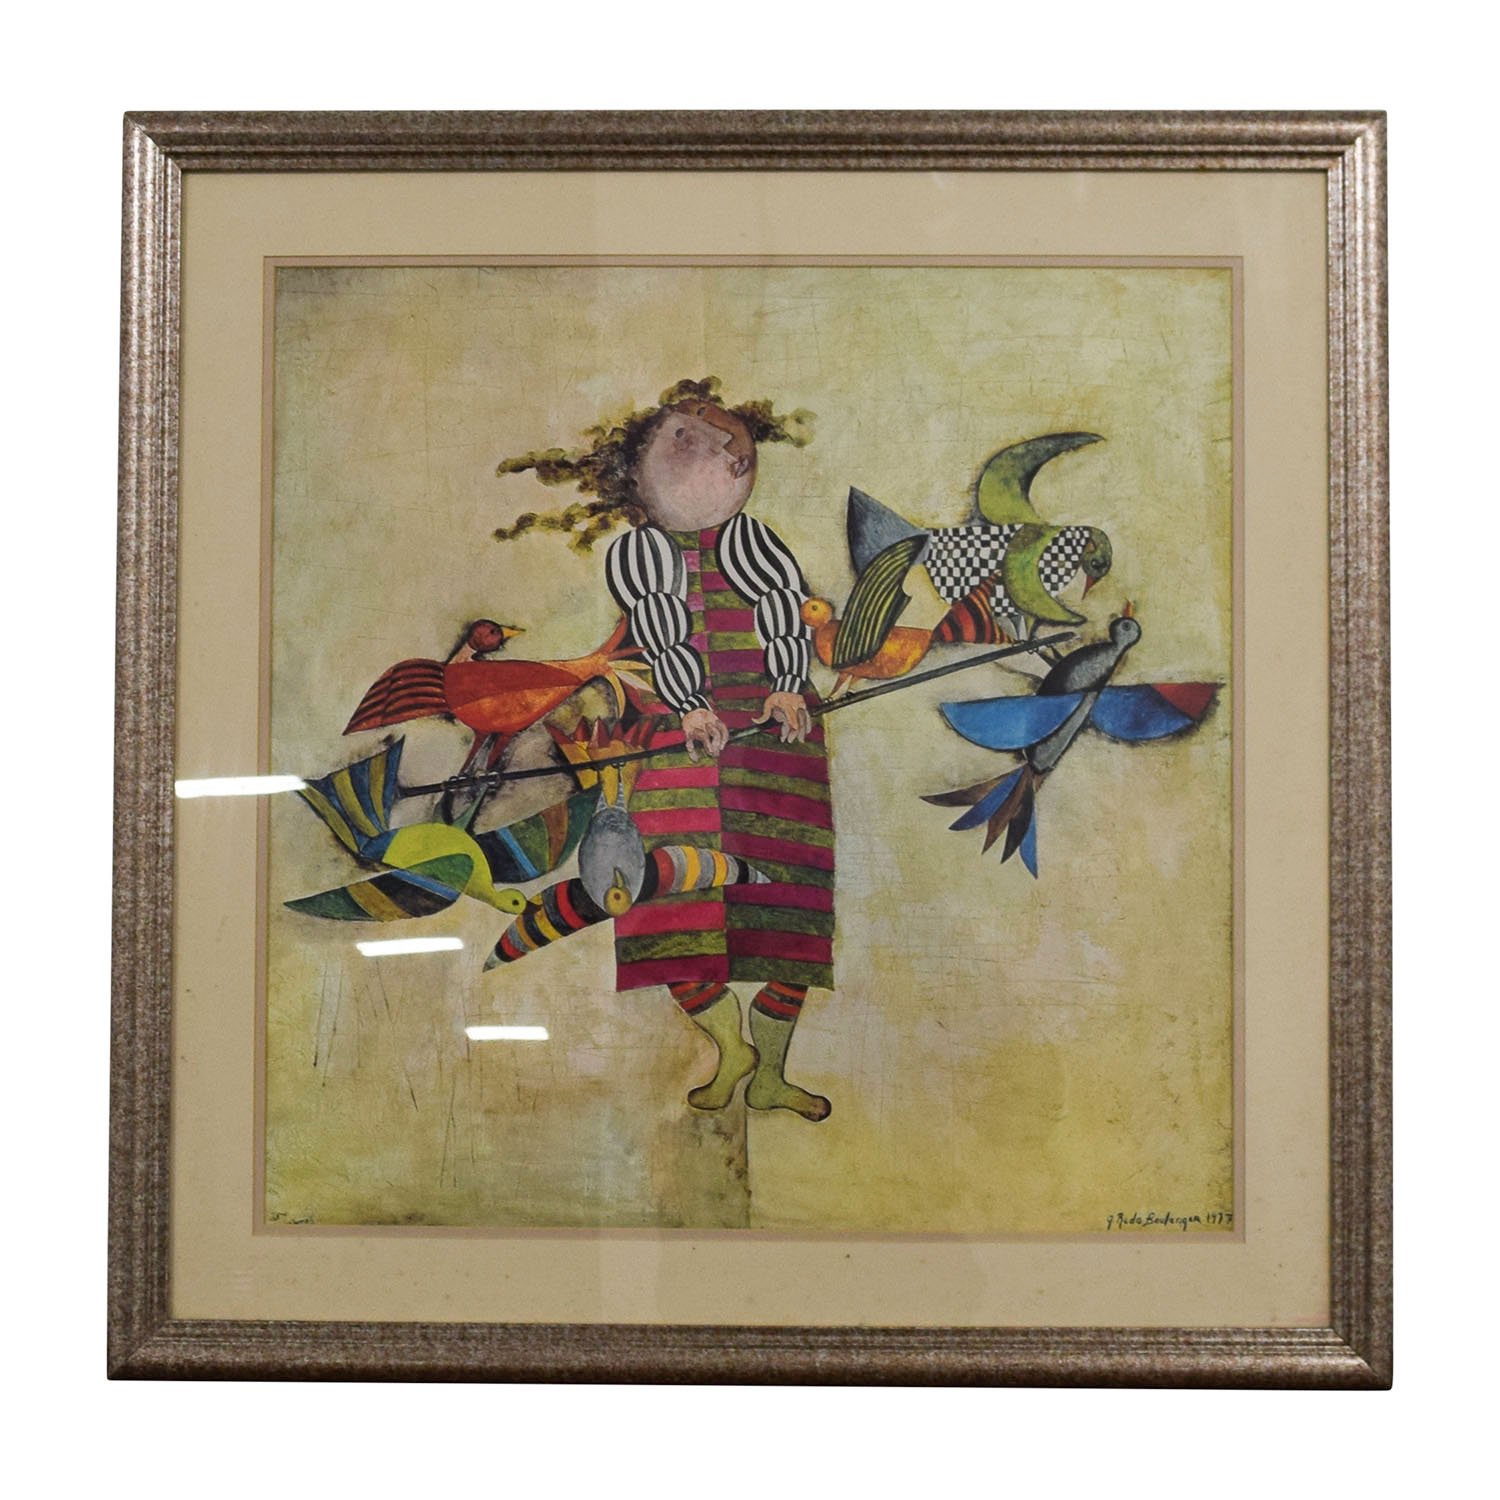 shop Q. Rodo Boulanger Framed Art online